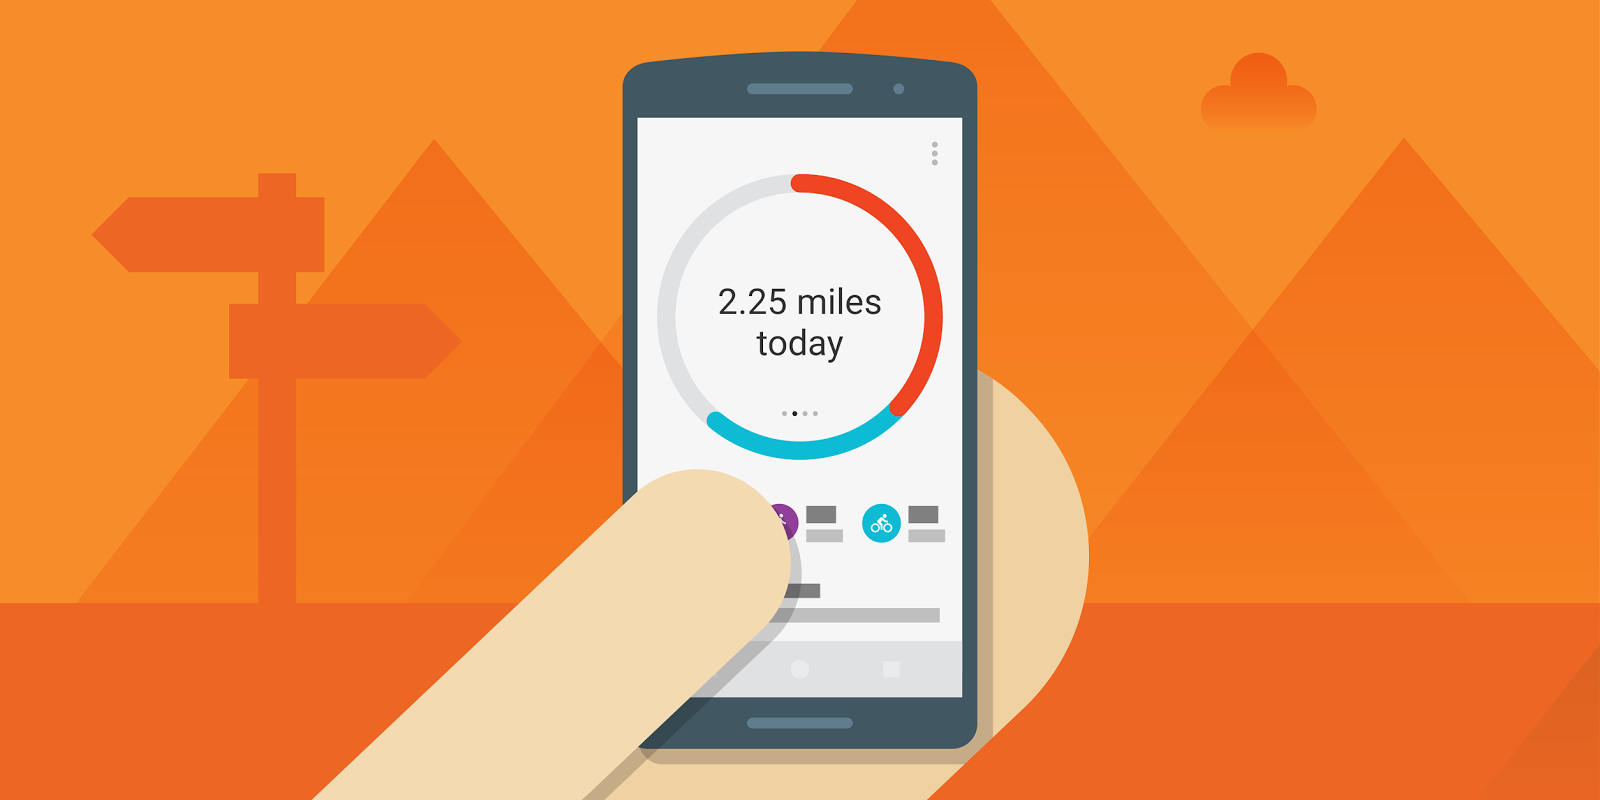 Google Developers Blog: What's new with Google Fit: Distance